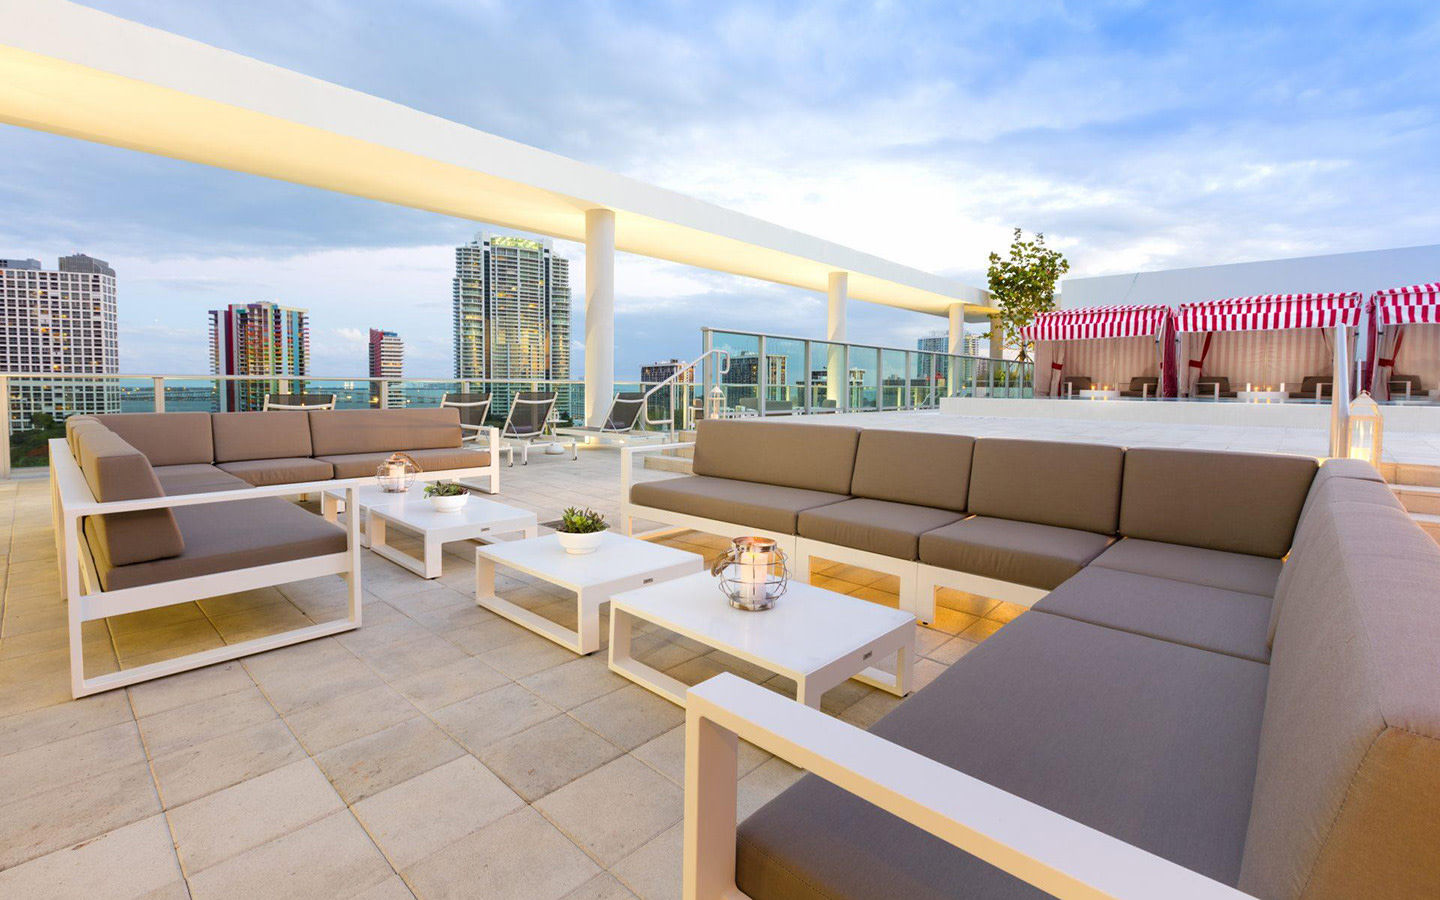 Rooftop patio area